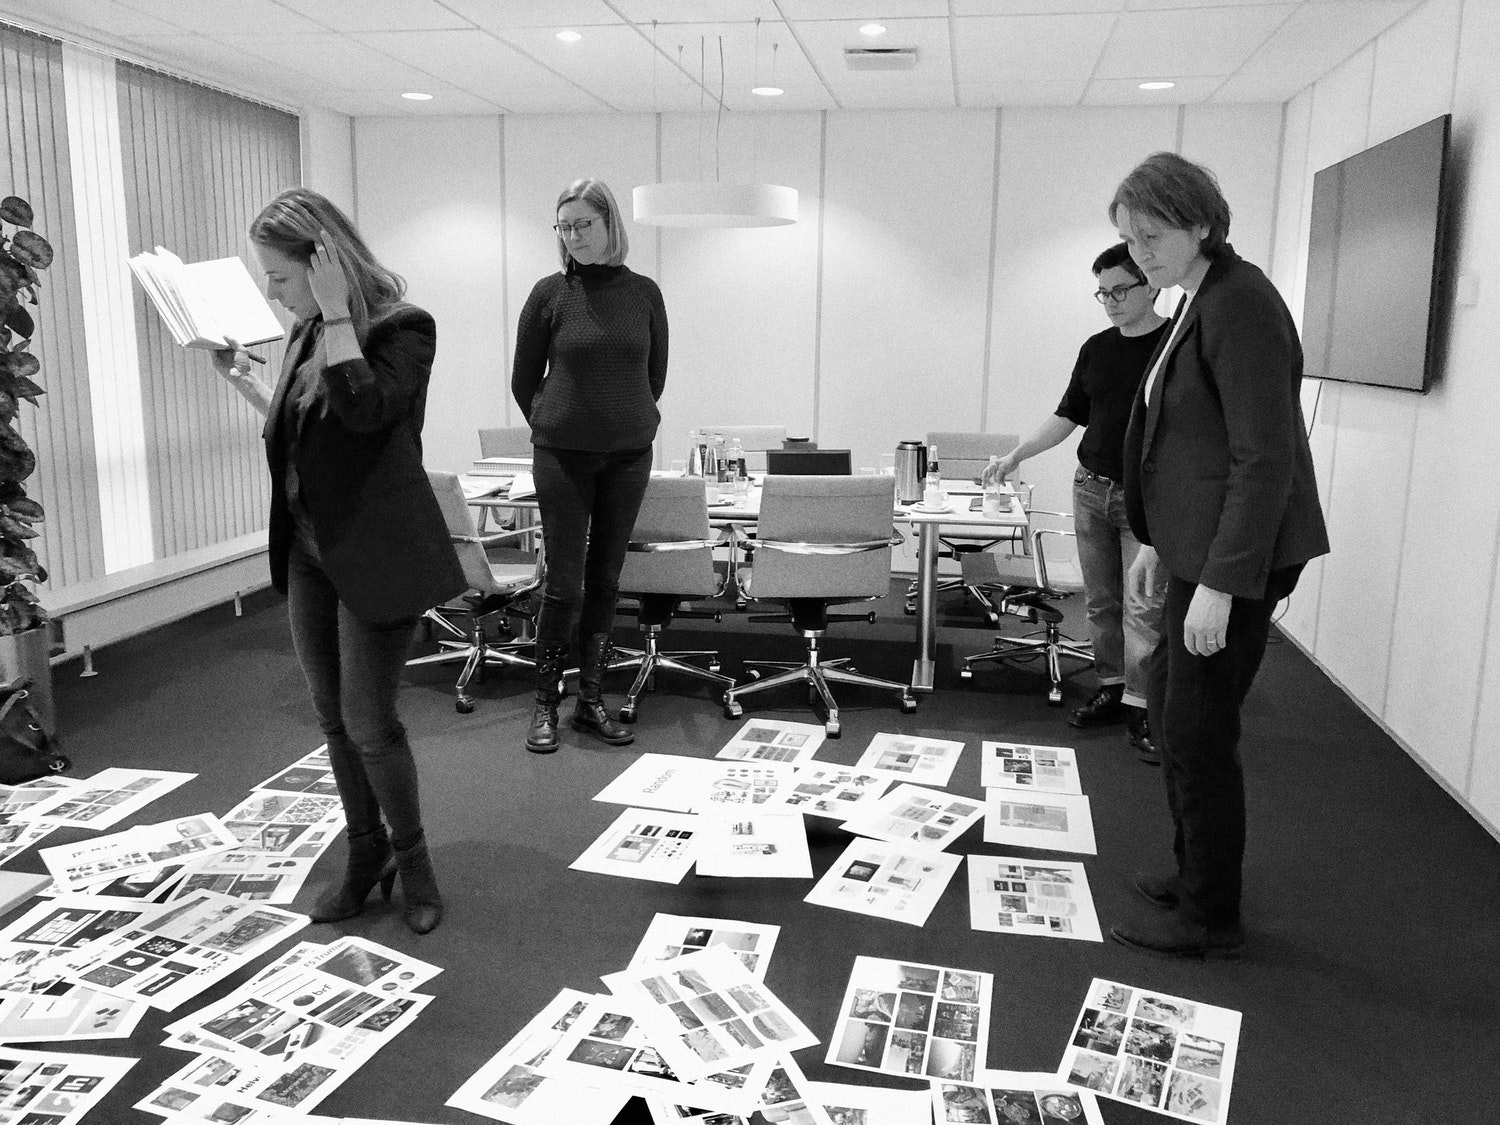 Black and white picture of office with papers on floor and four people working